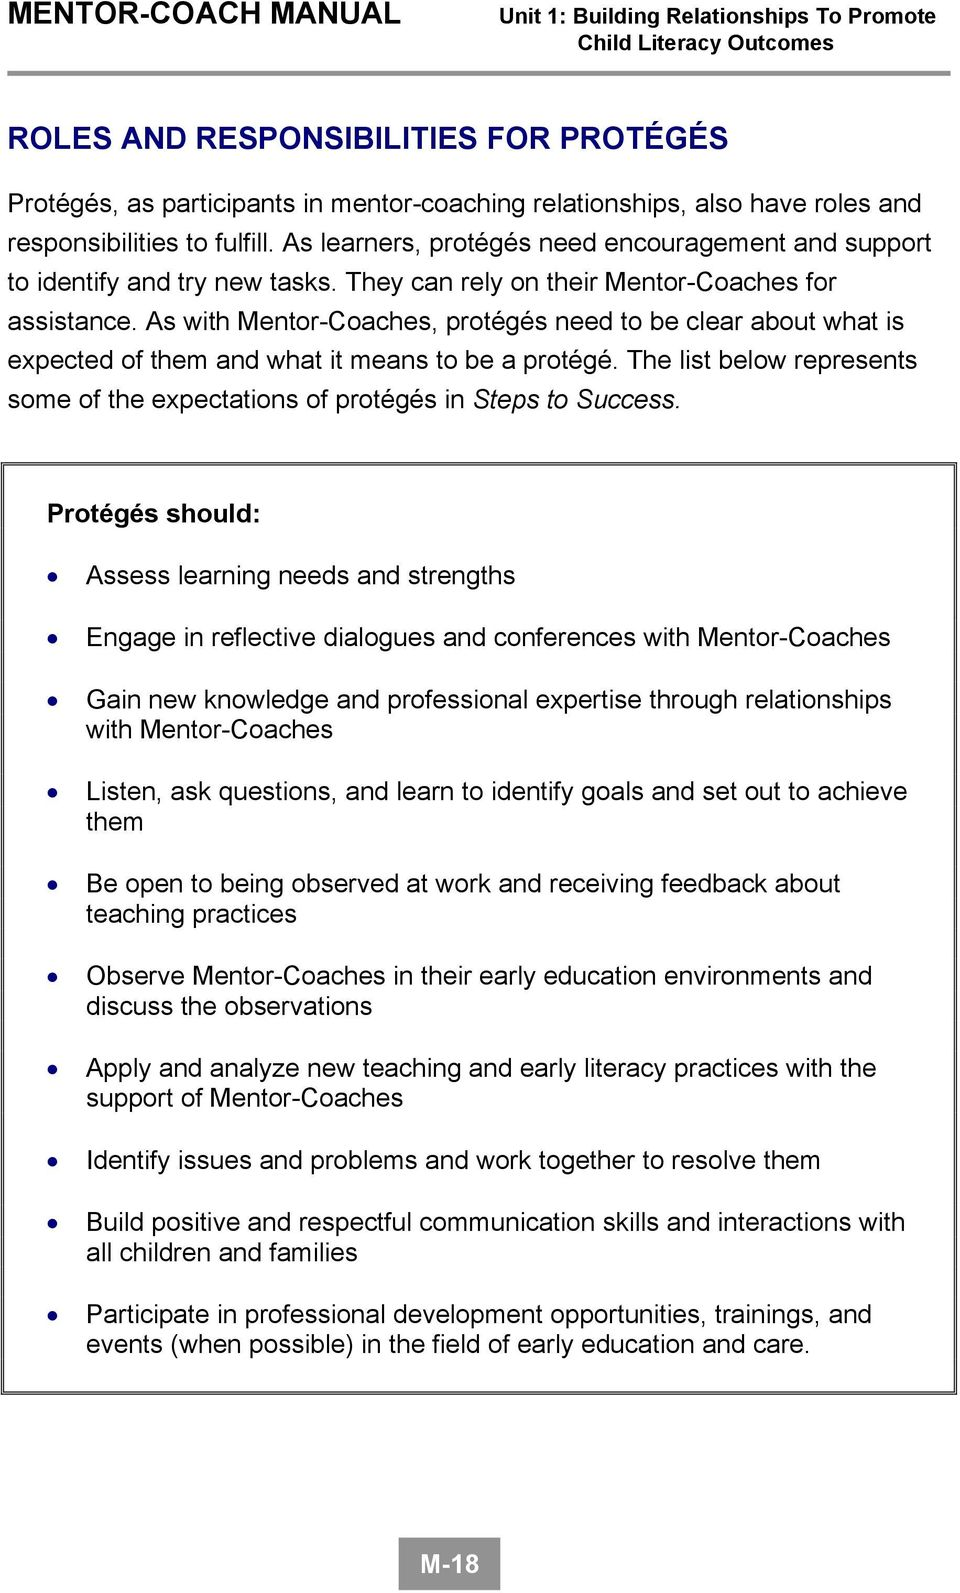 As with Mentor-Coaches, protégés need to be clear about what is expected of them and what it means to be a protégé. The list below represents some of the expectations of protégés in Steps to Success.